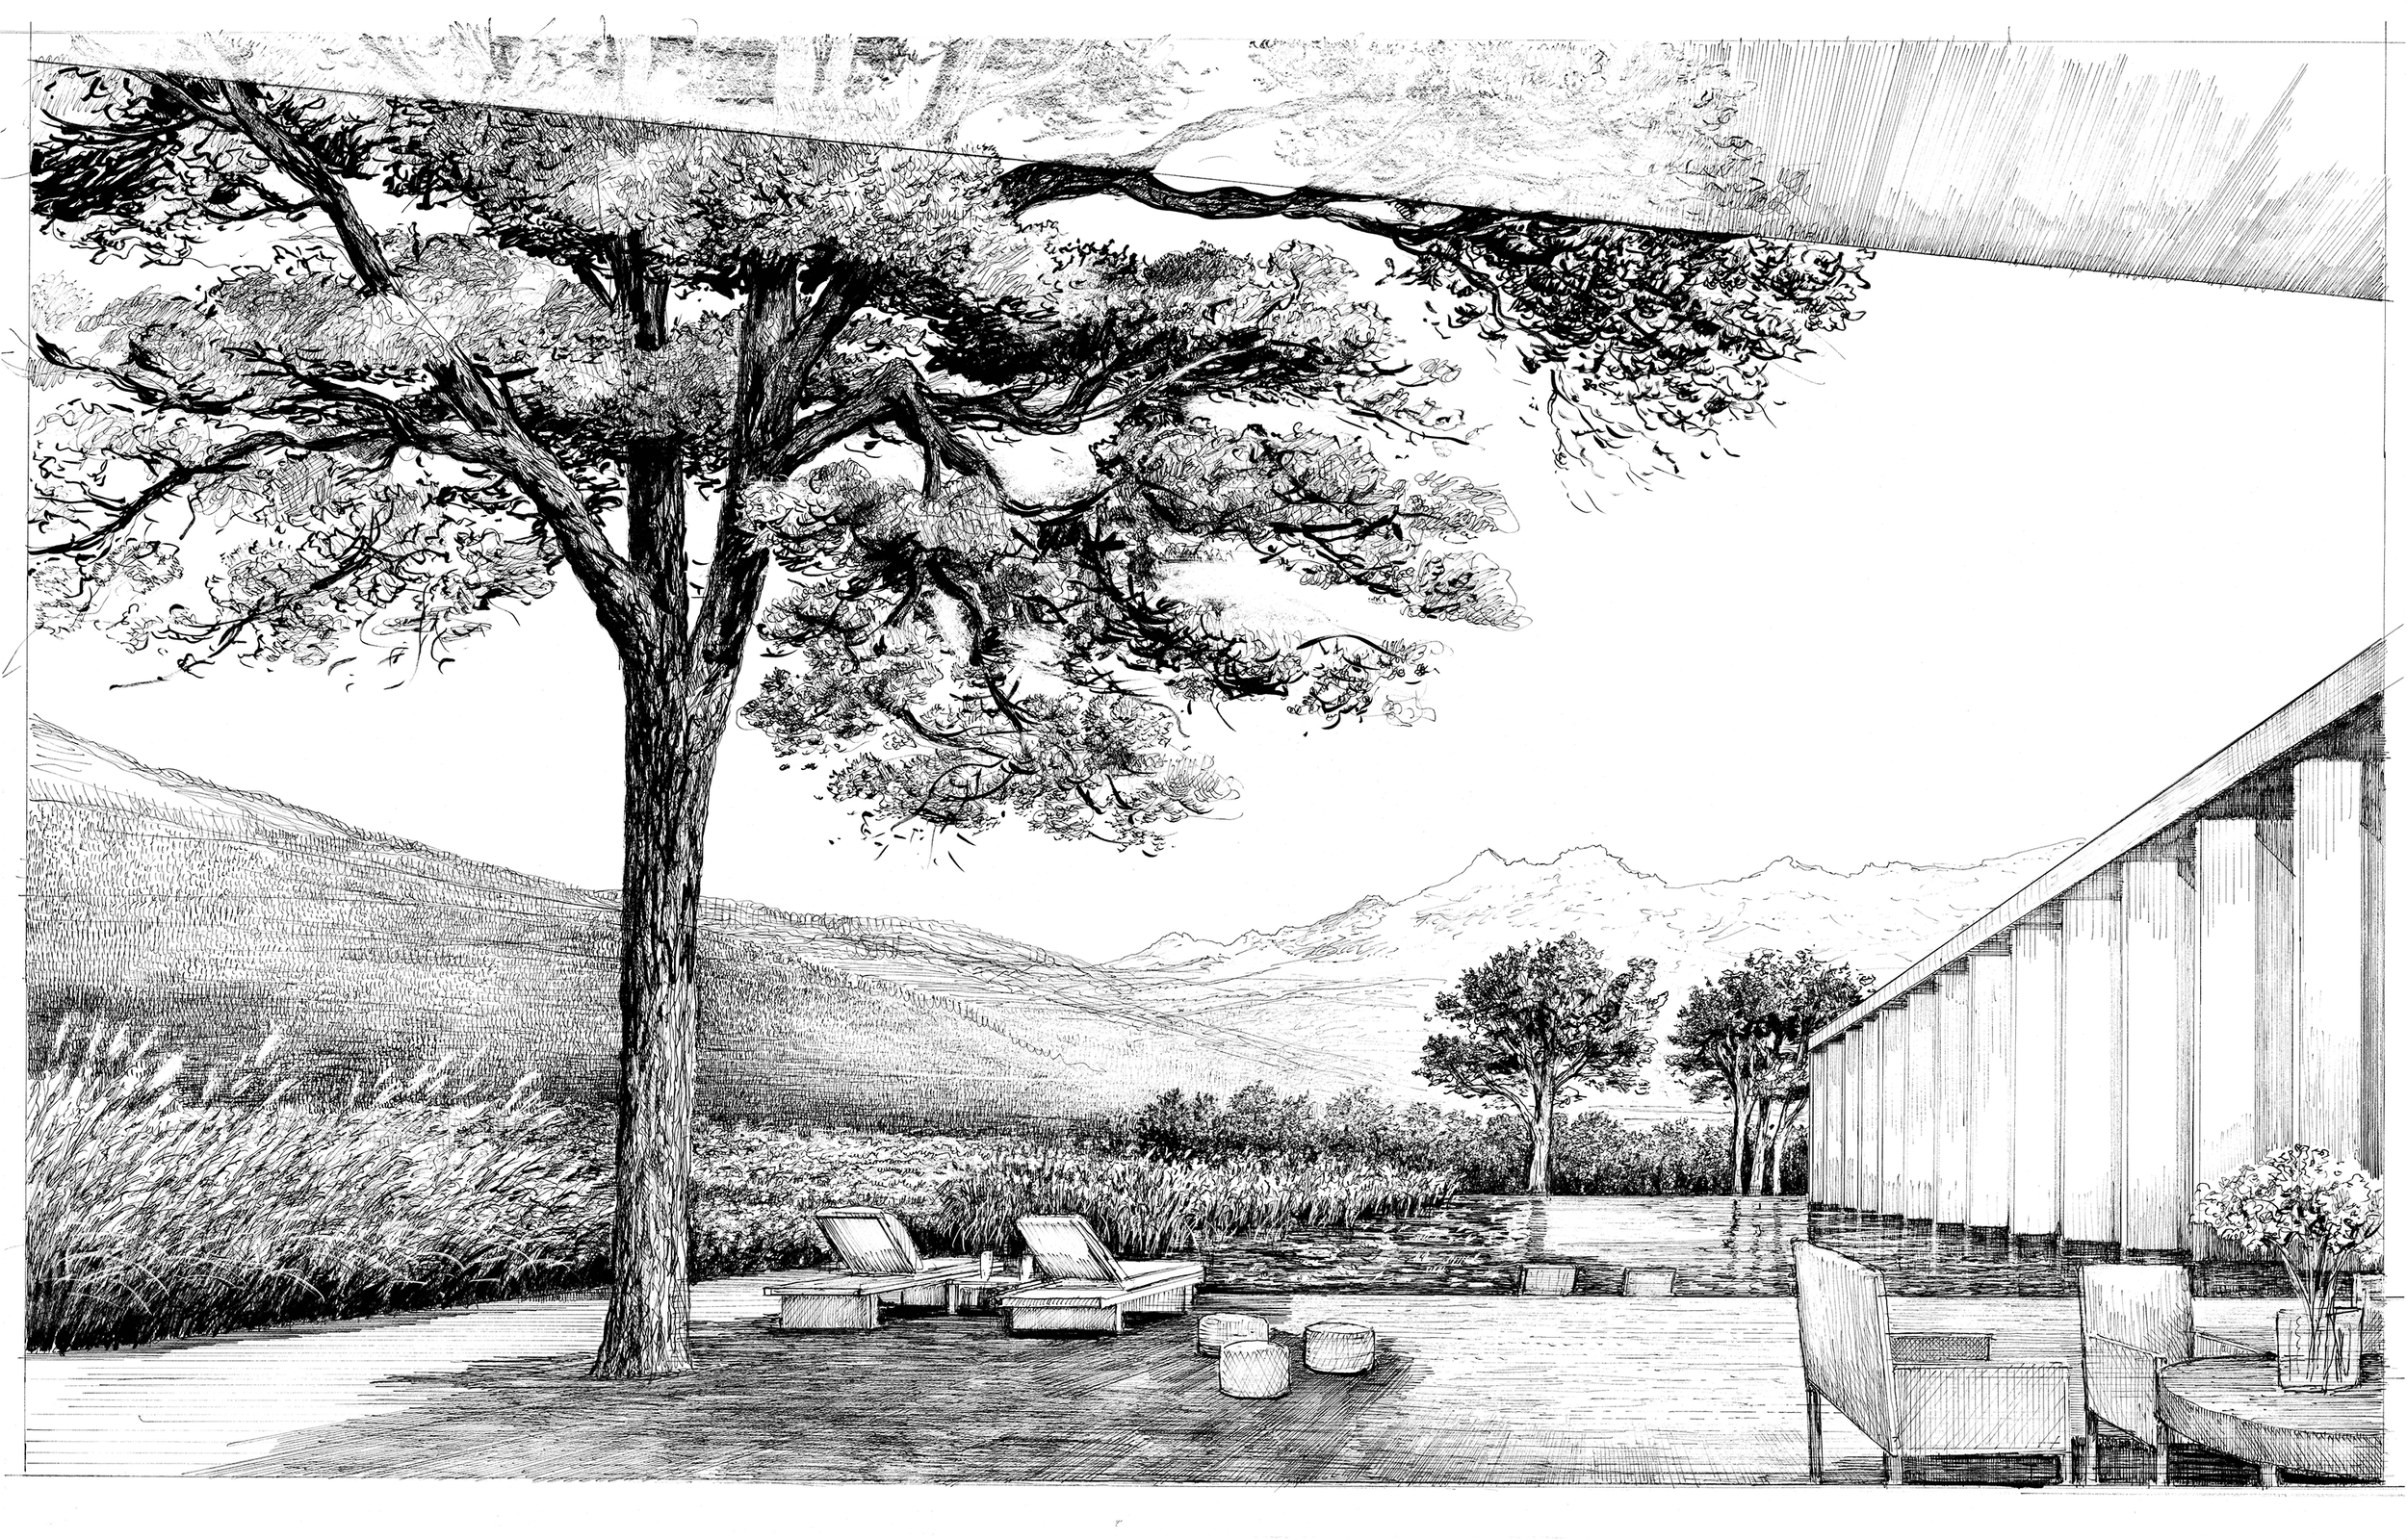 pool terrace perspective (drawn by bruno moser/ enea landscape architecture)